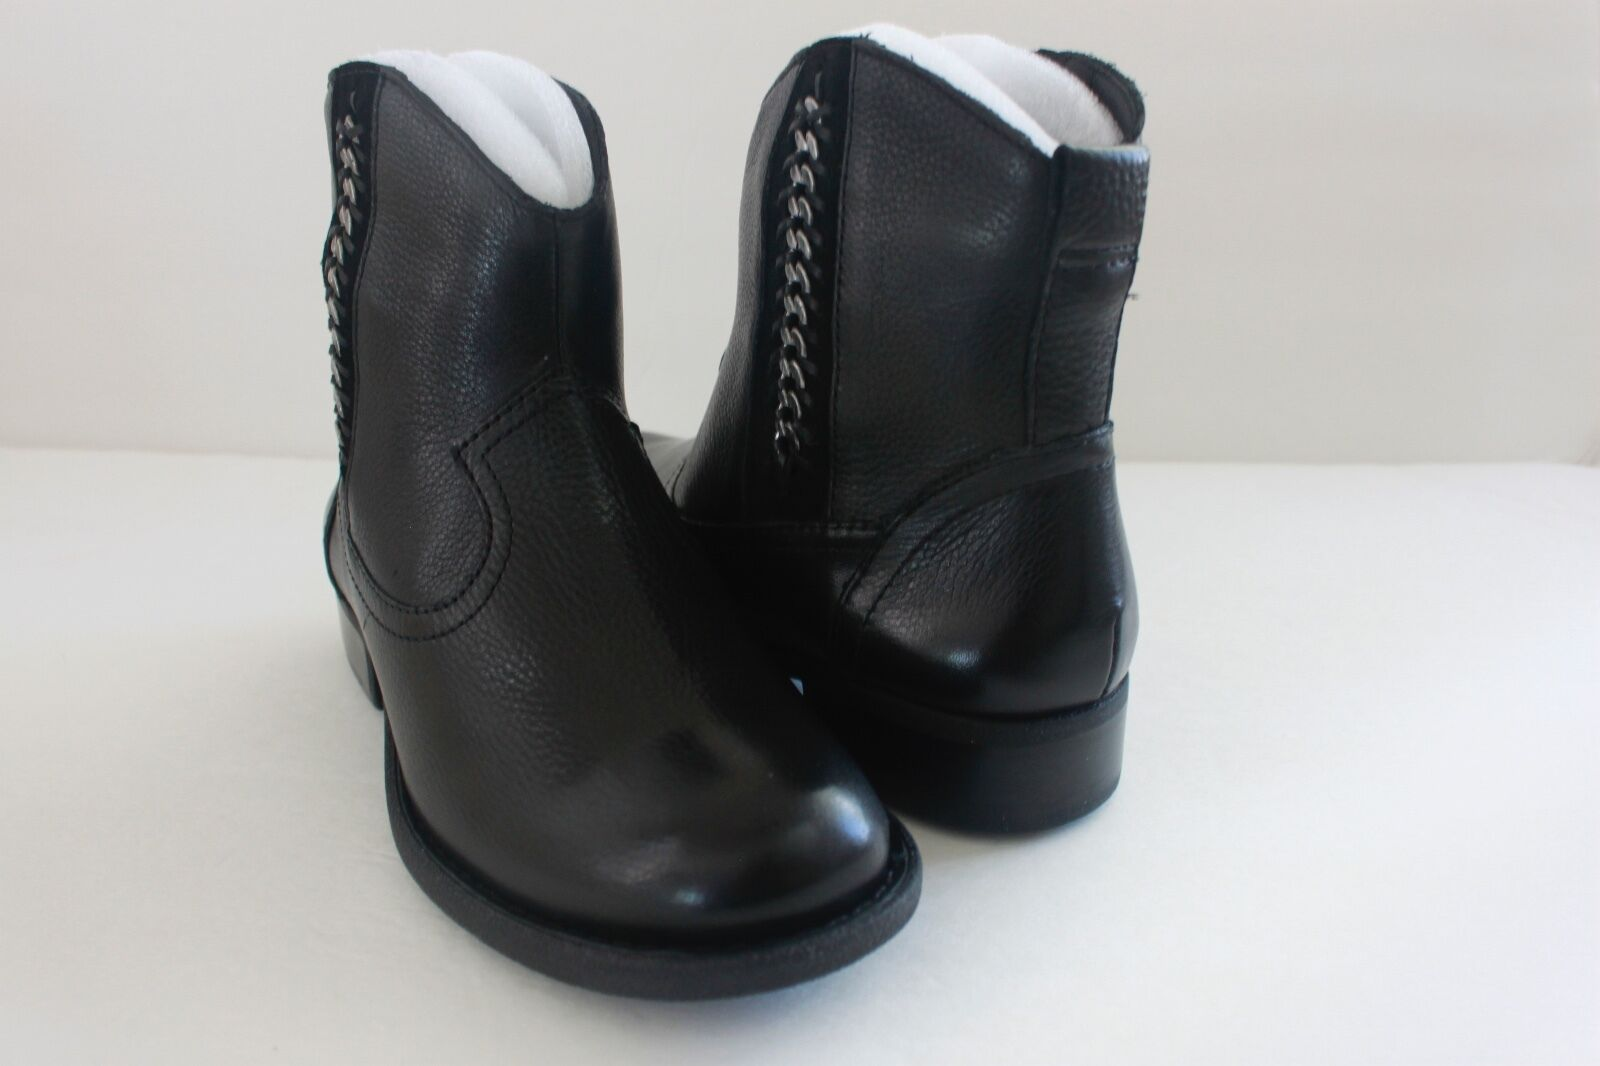 Womens Nurture Willa Black Leather Leather Leather Chain Trimmed Western Booties Boot Size 5.5 M e5f292